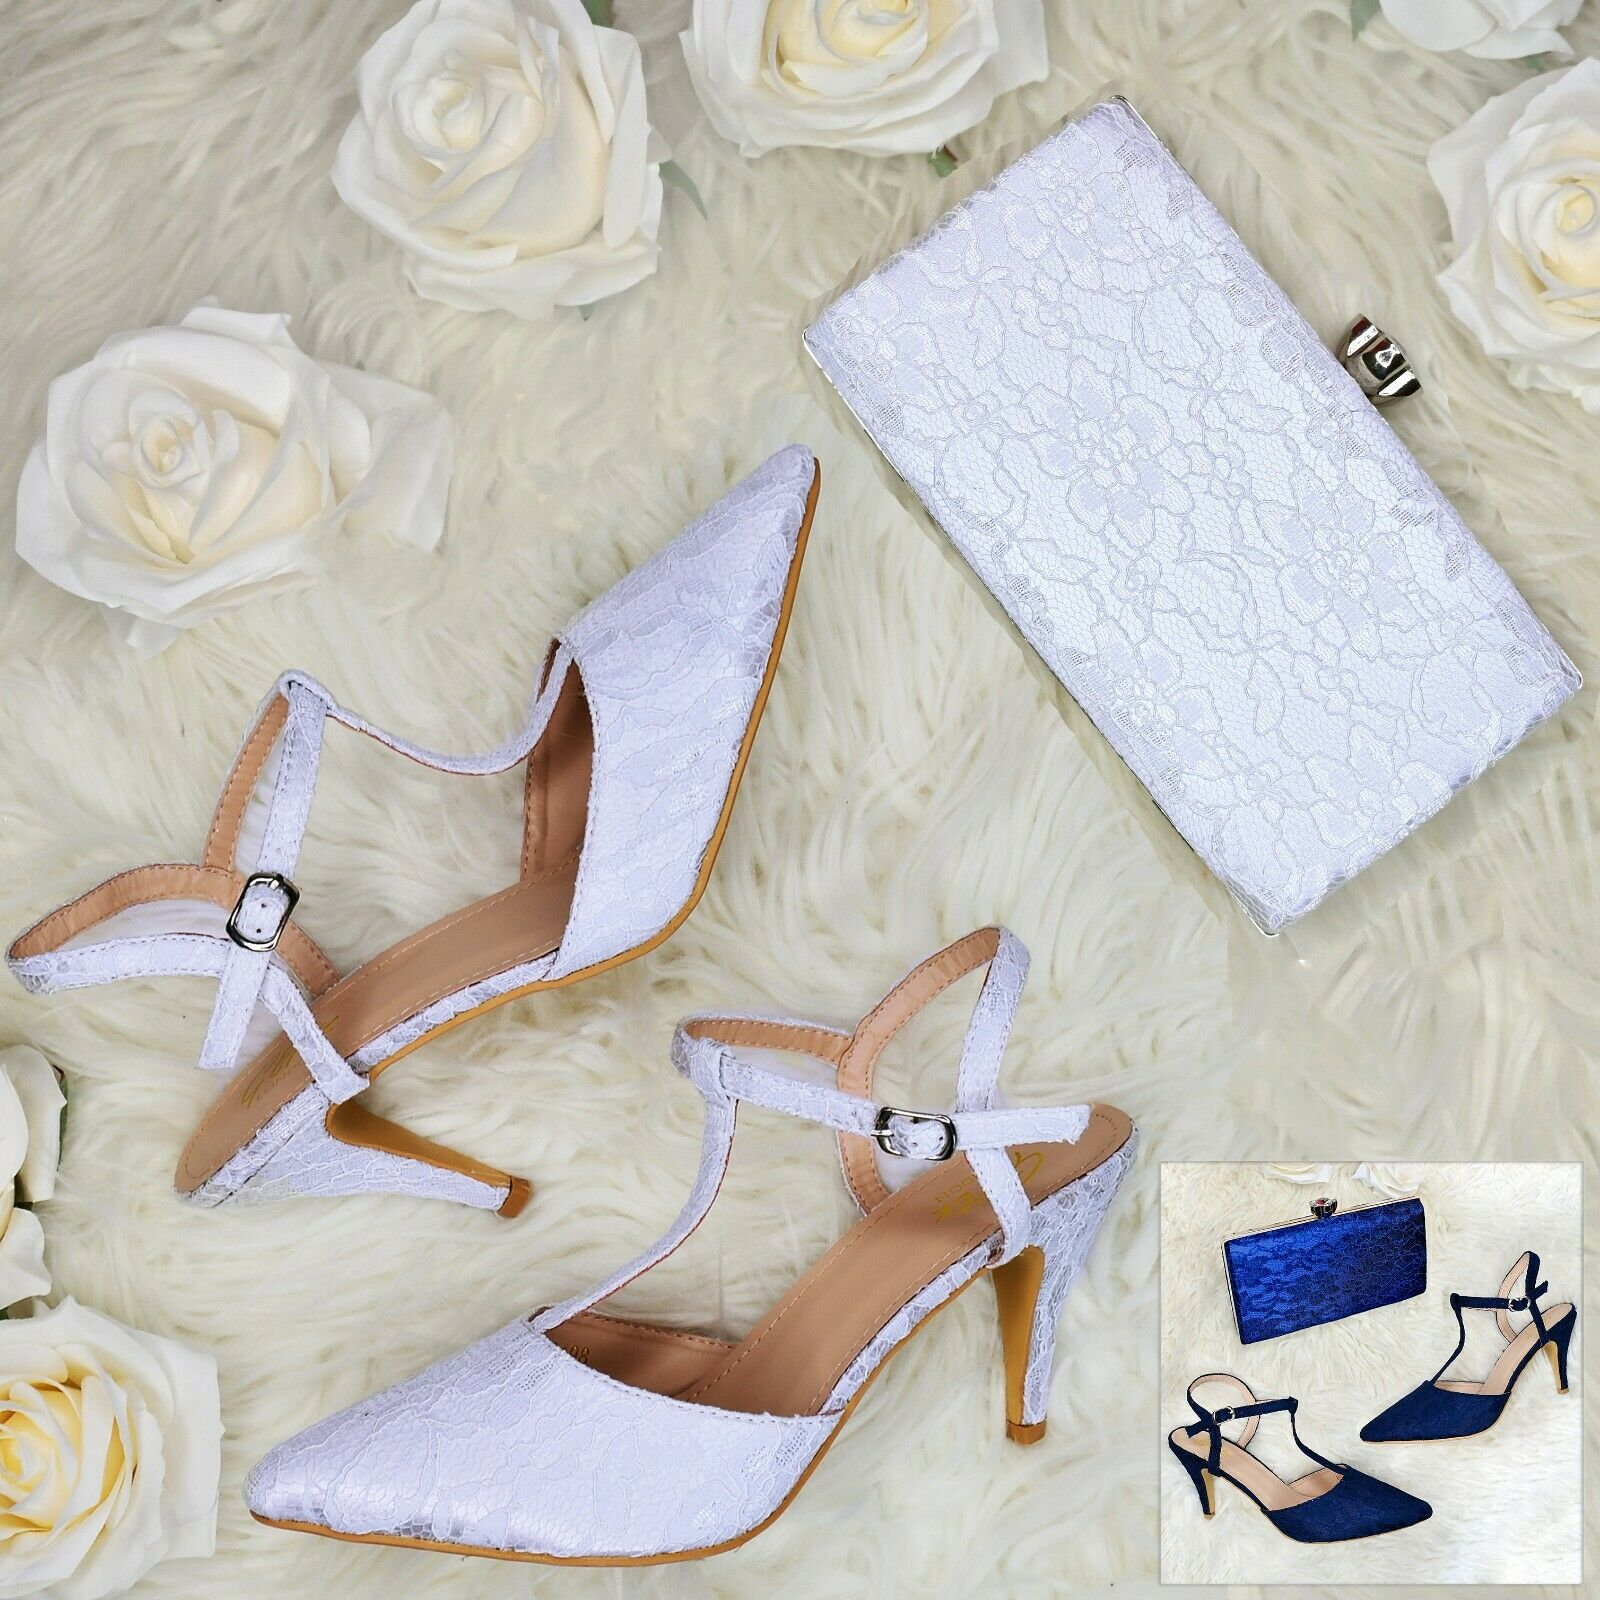 Womens Lace High Heel shoes + Matching clutch Bag, Evening Bridal Formal Sandals